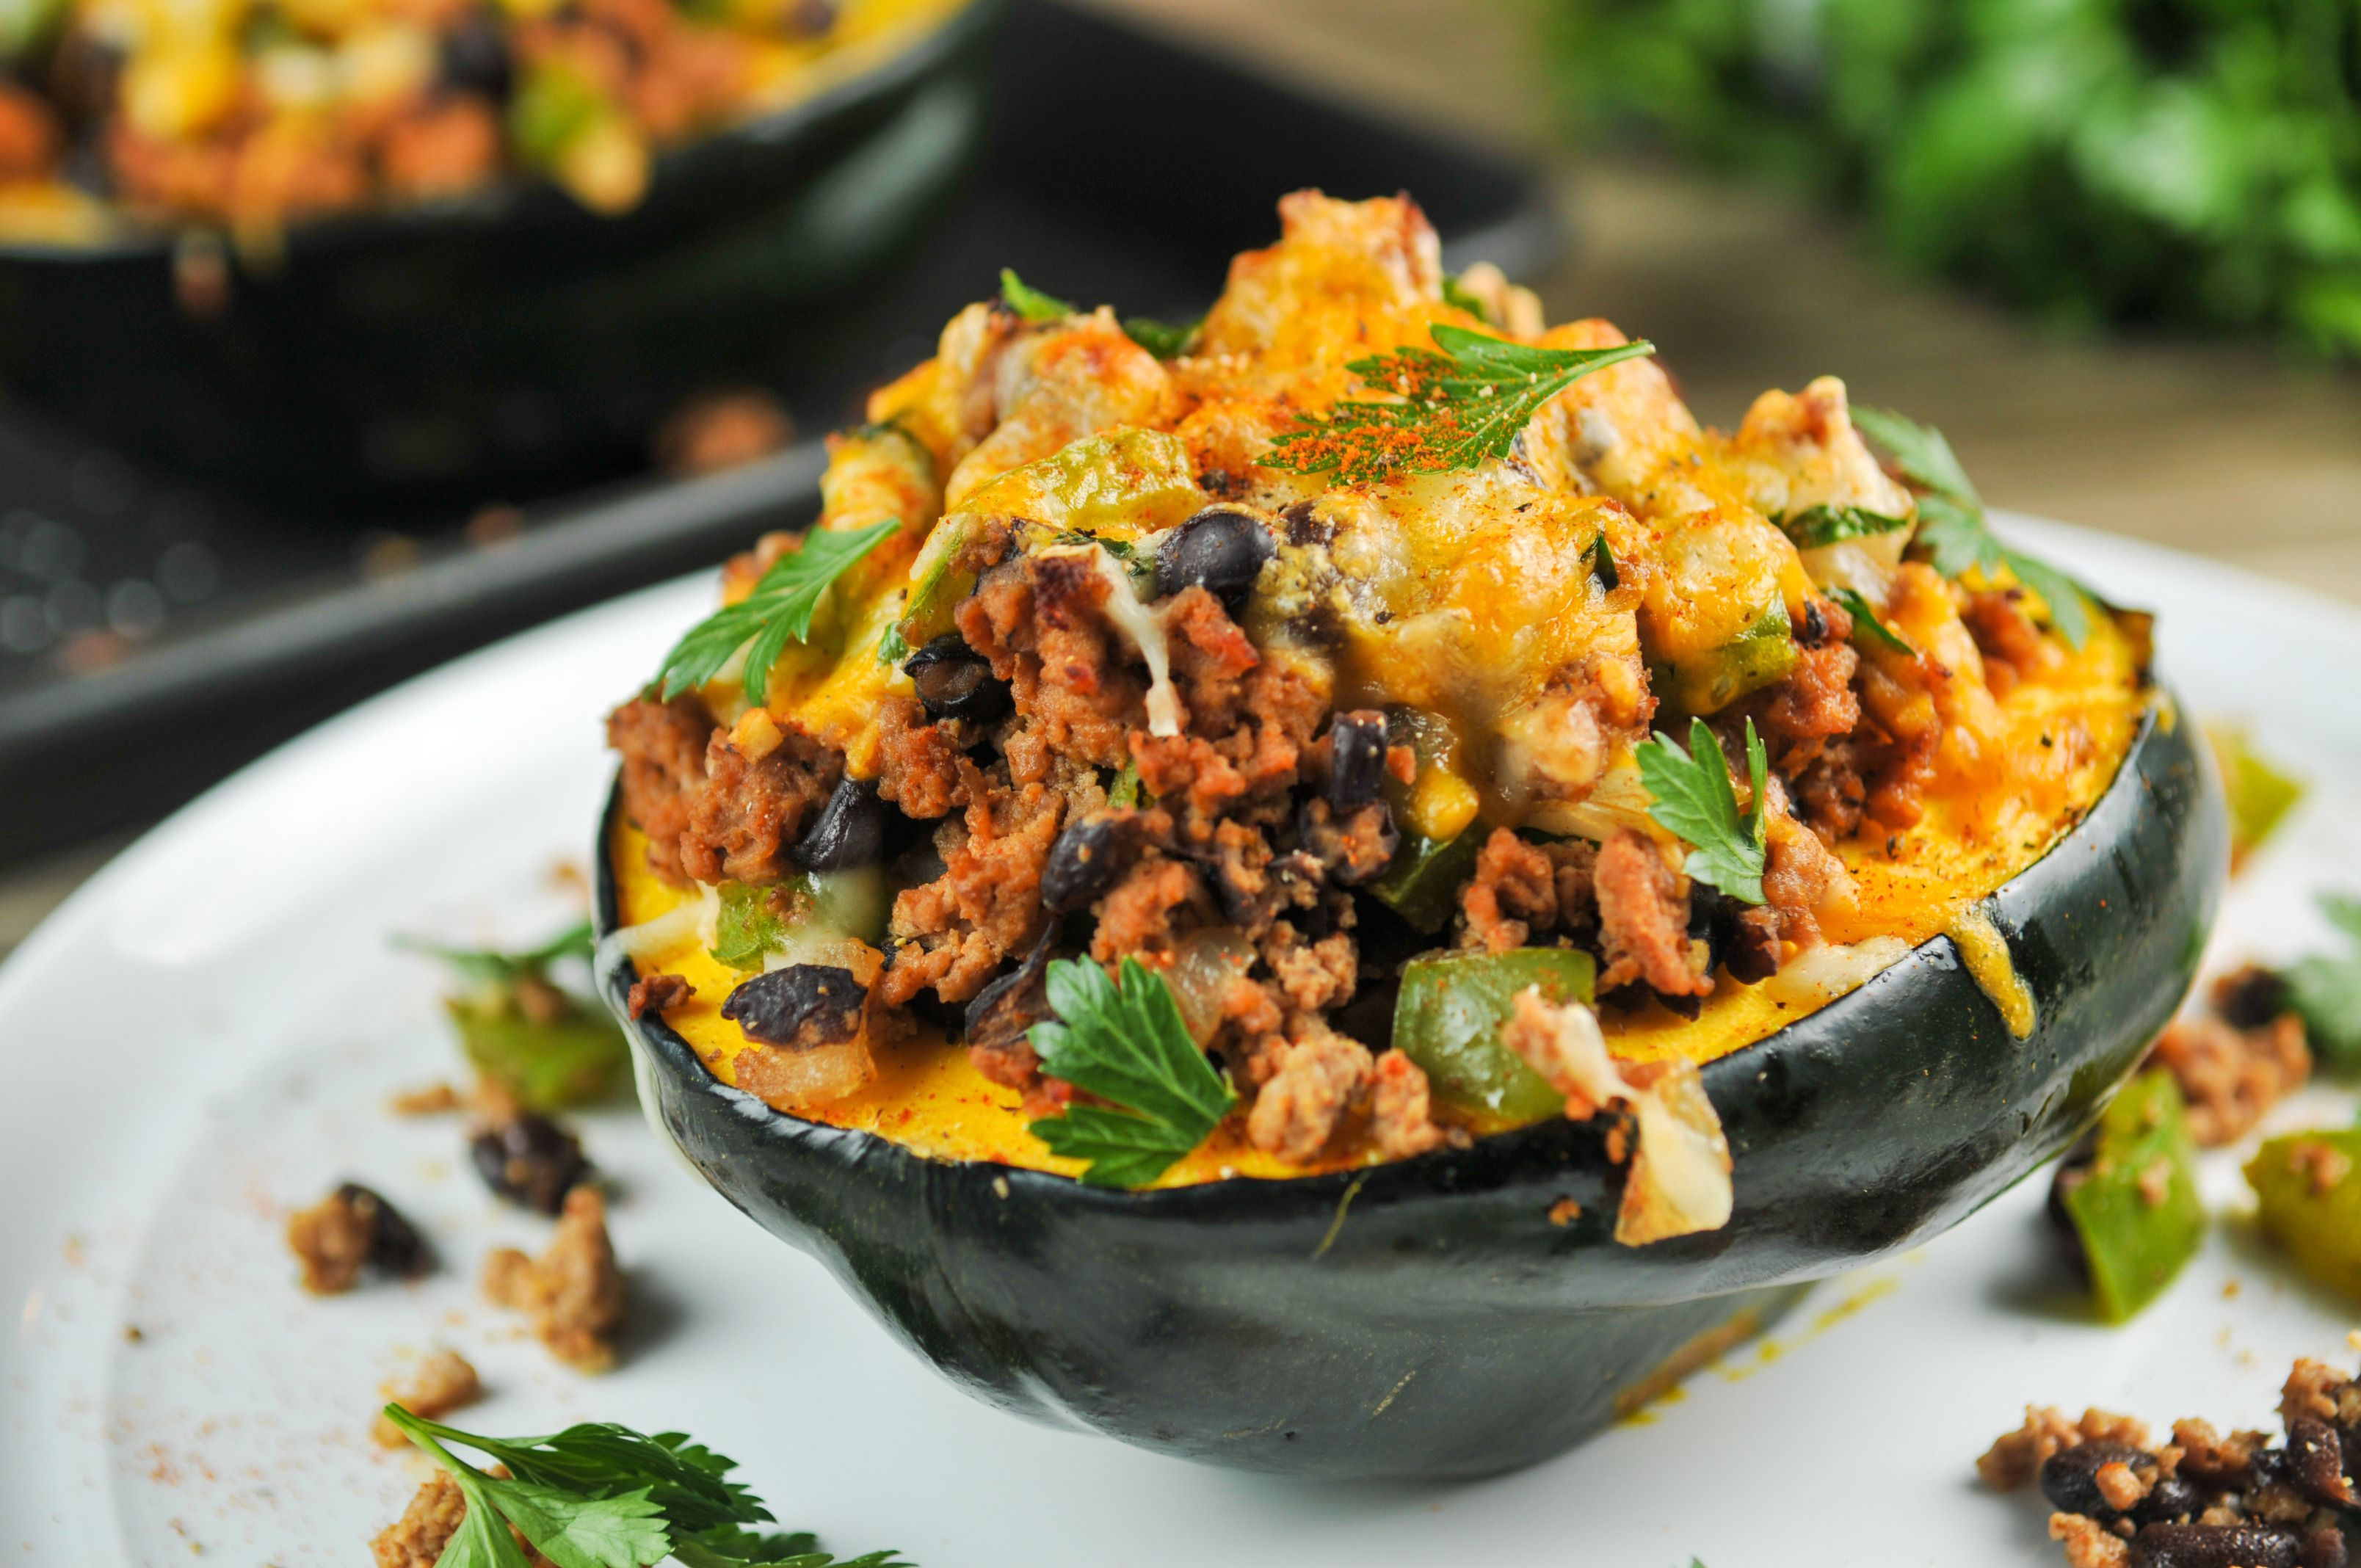 Turkey Stuffed Acorn Squash With Black Beans Southwestern Spices